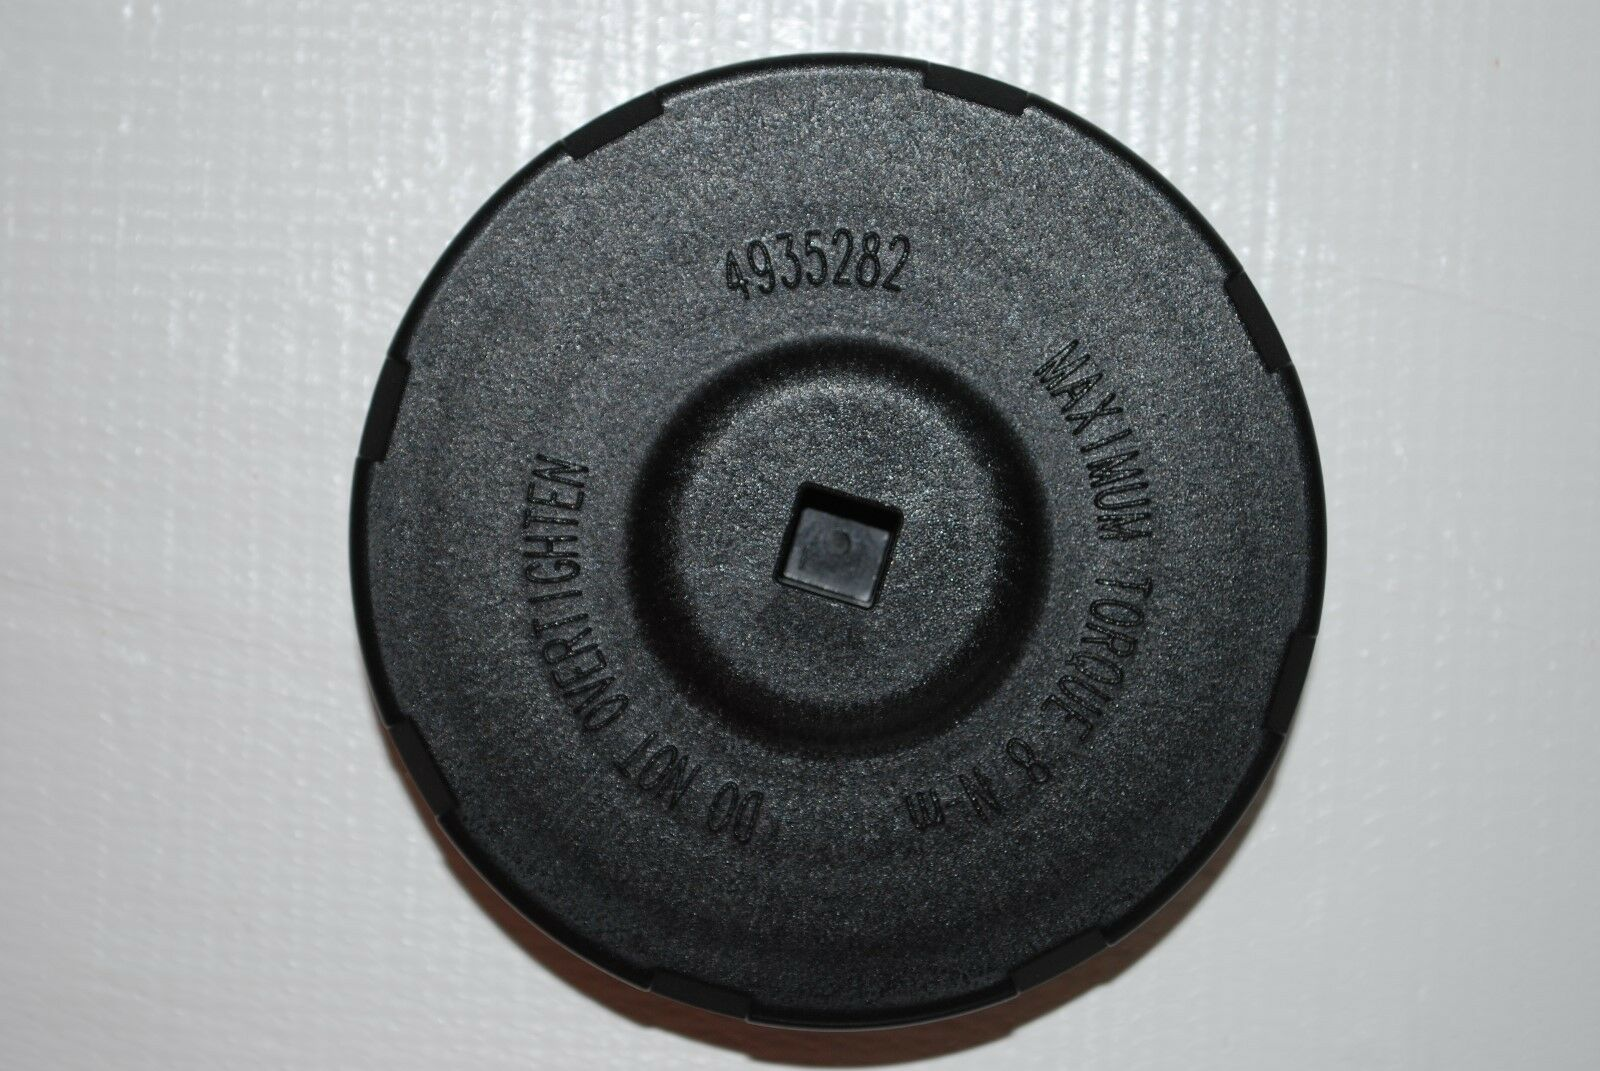 CP3 INJECTION PUMP ACCESS HOLE COVER DODGE 03-07 NEW CUMMINS CP3 PUMP COVER